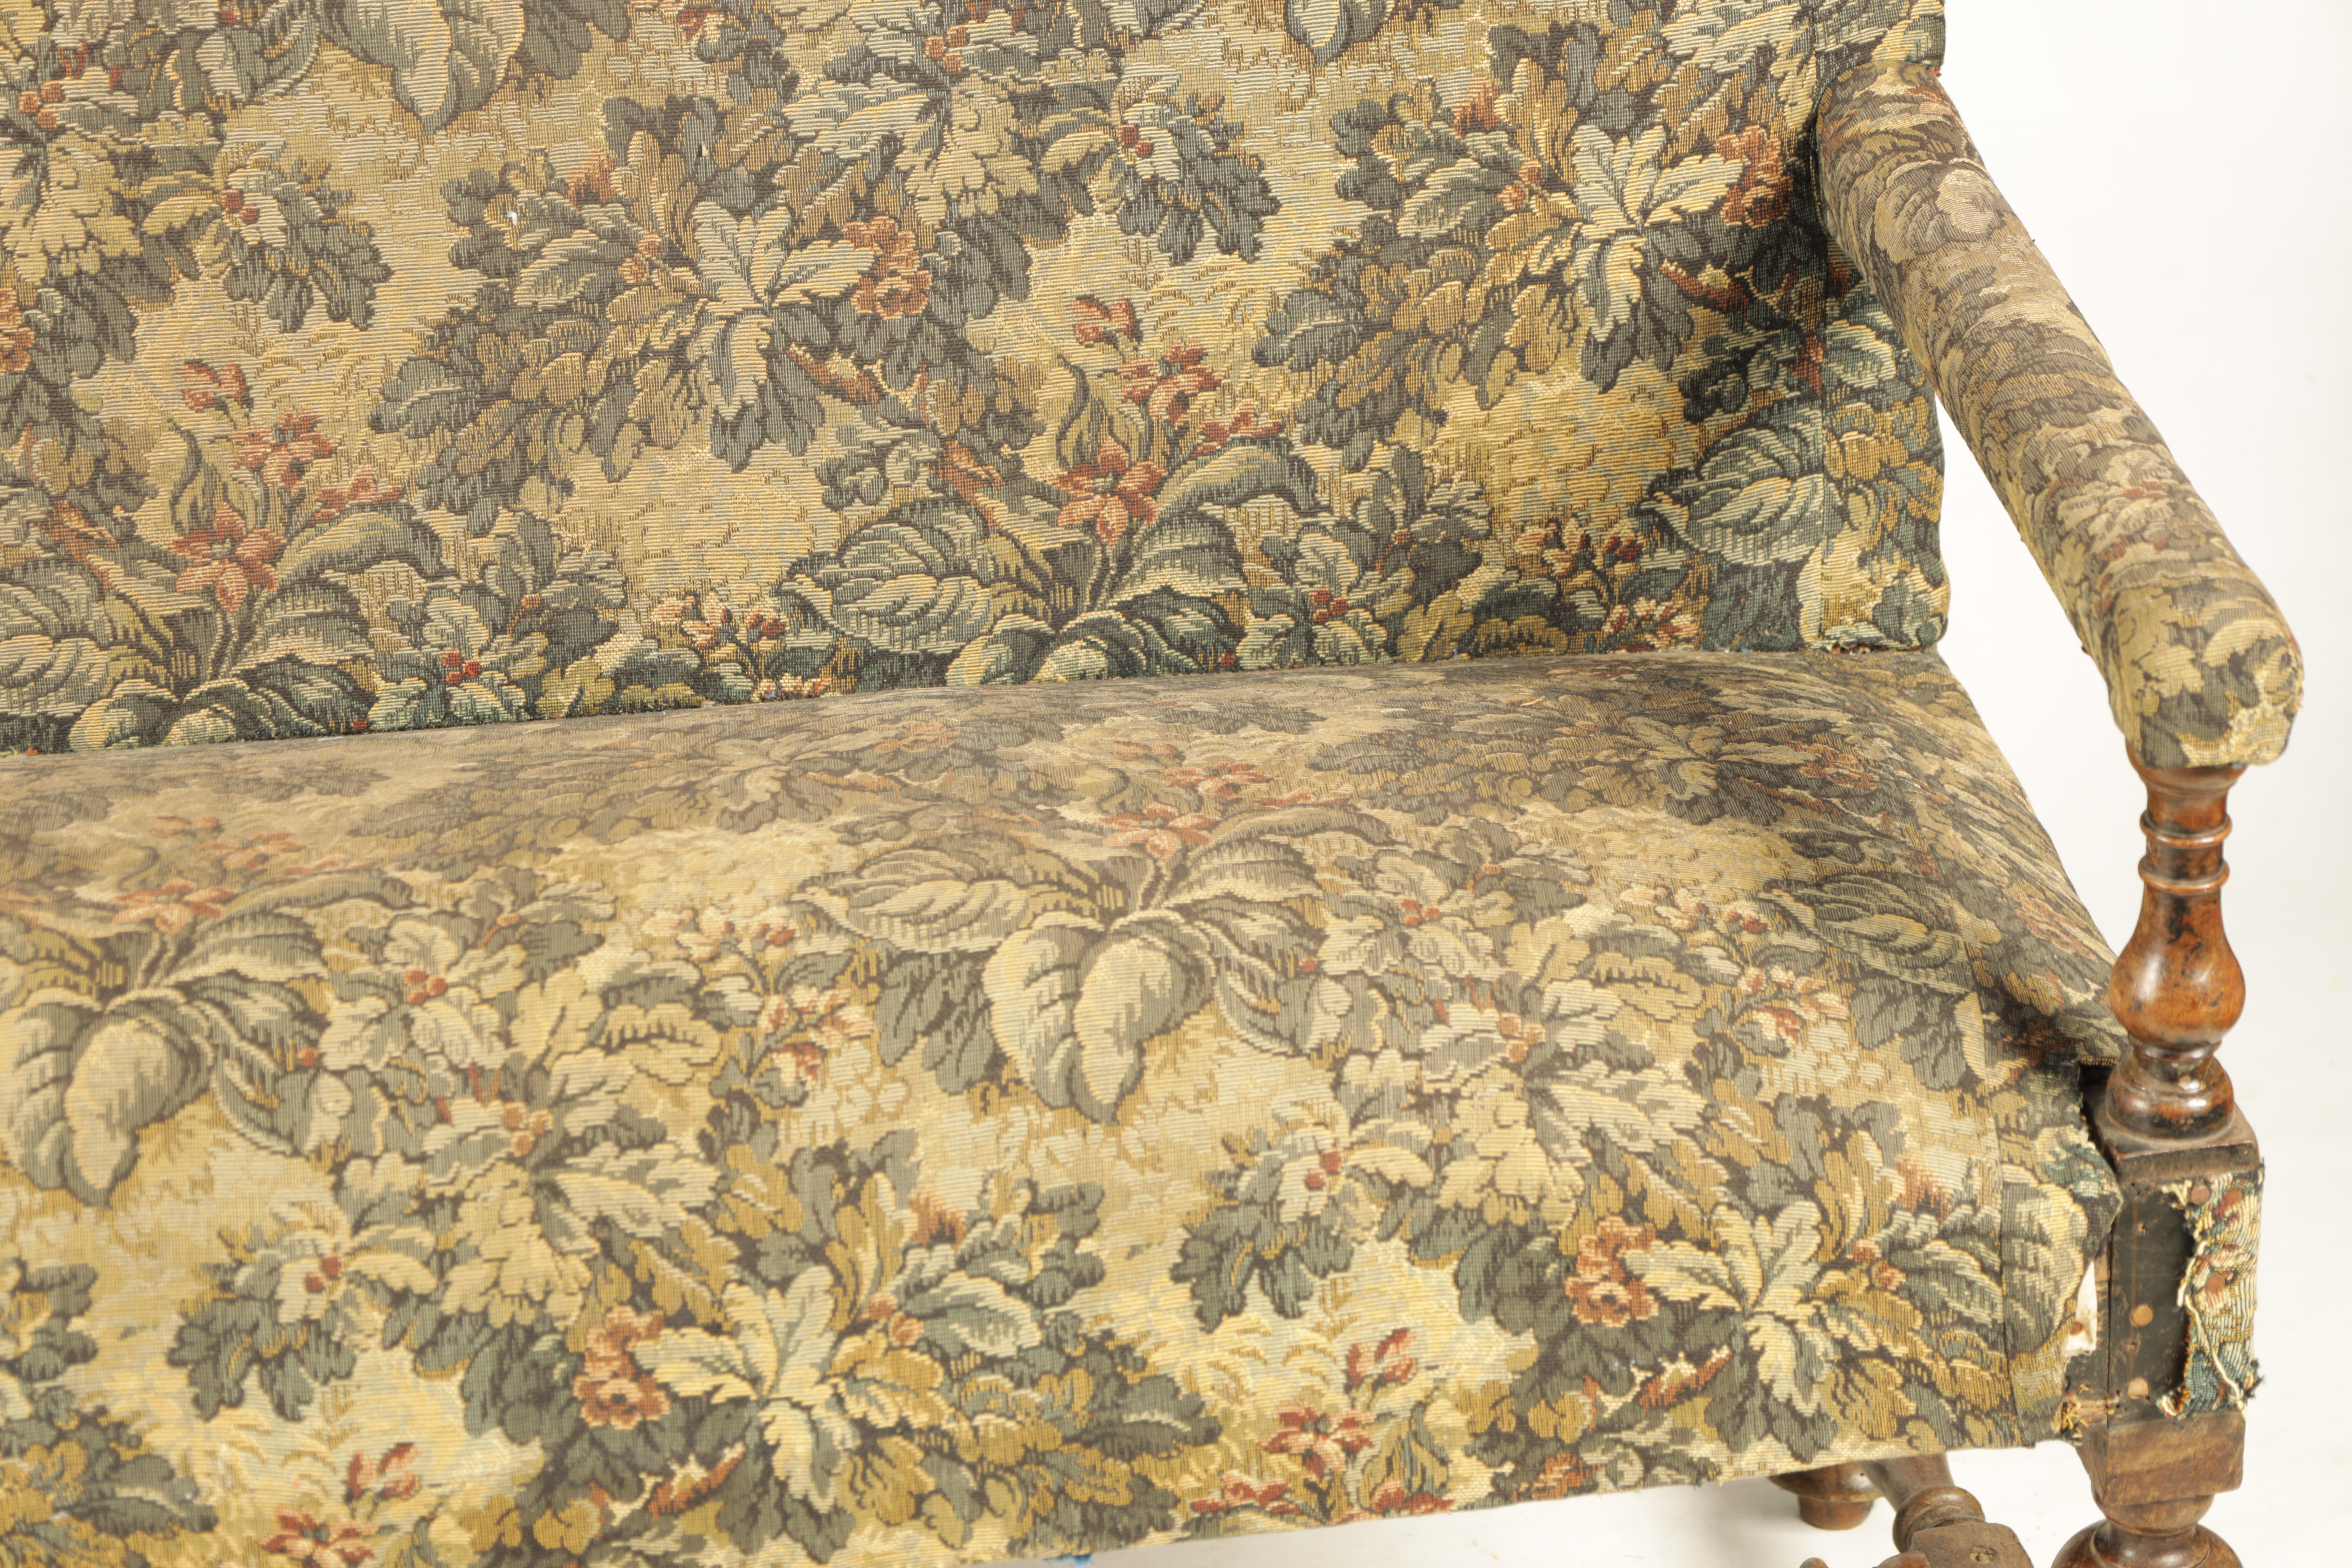 A SMALL LATE 17TH CENTURY TURNED WALNUT TWO SEATER SETTEE with tapestry upholstery, raised on a ring - Image 2 of 5